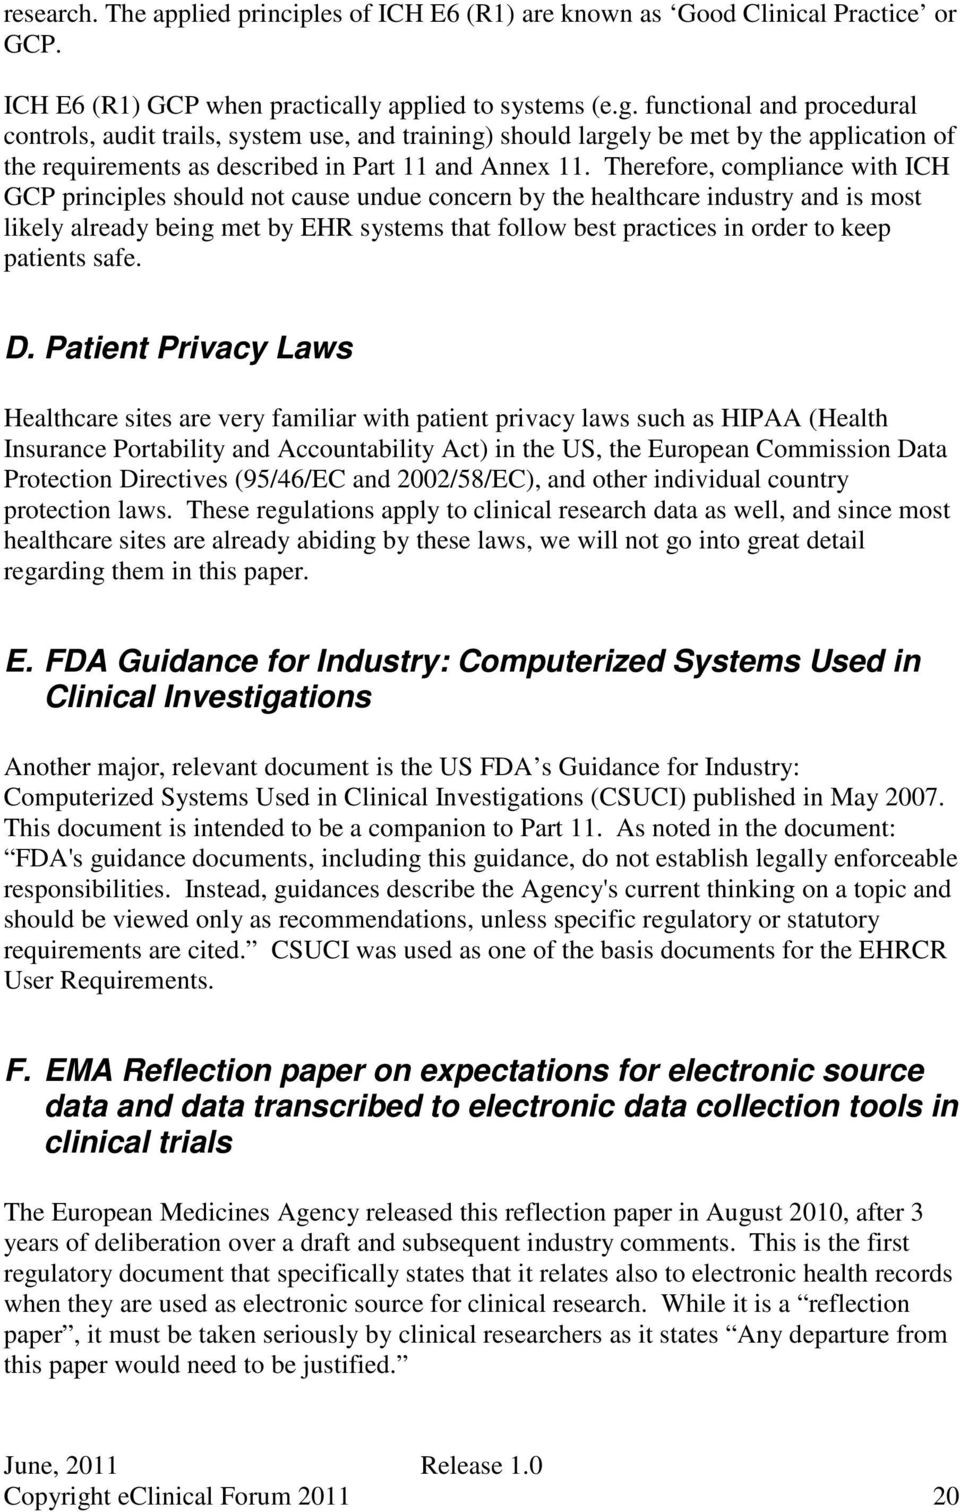 Therefore, compliance with ICH GCP principles should not cause undue concern by the healthcare industry and is most likely already being met by EHR systems that follow best practices in order to keep